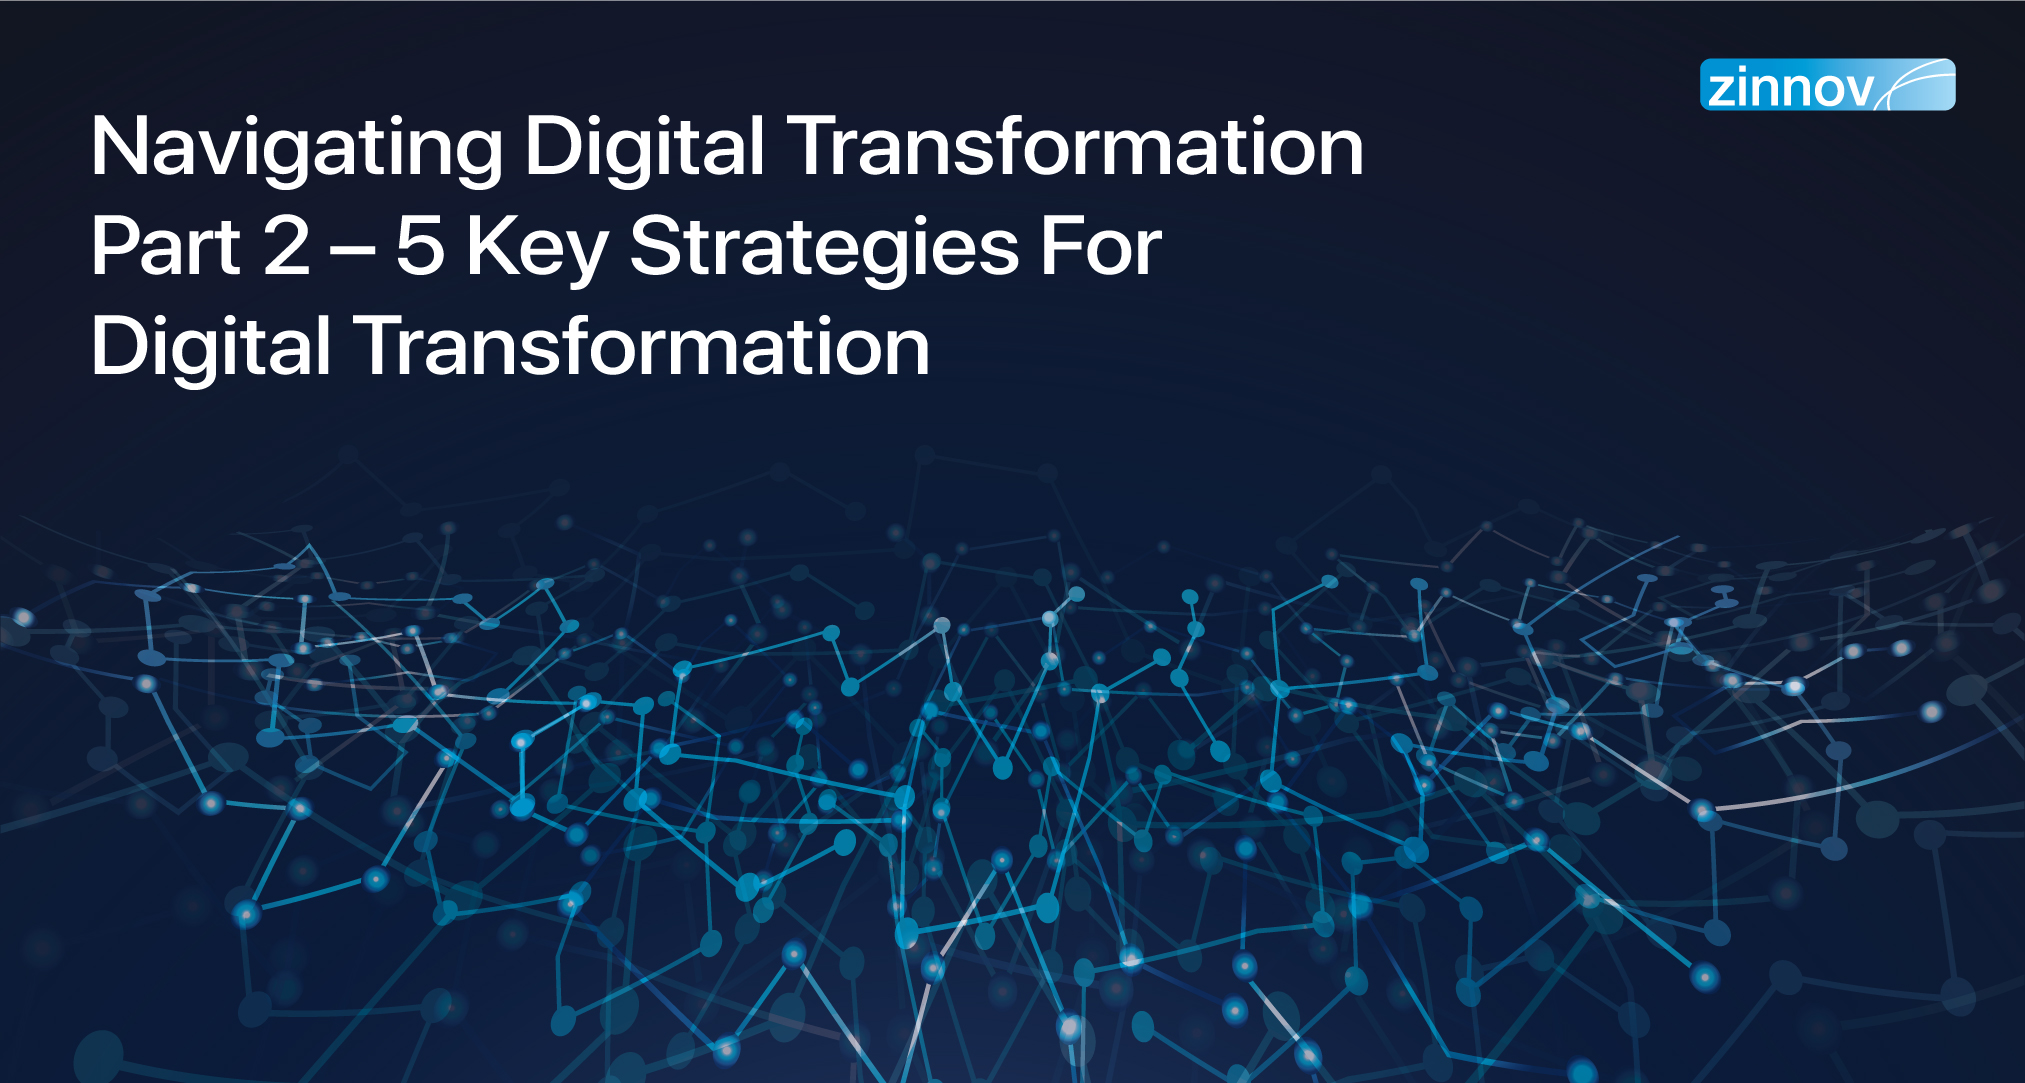 Navigating Digital Transformation Part 2: The 5 Key Strategies To Win At Digital Transformation